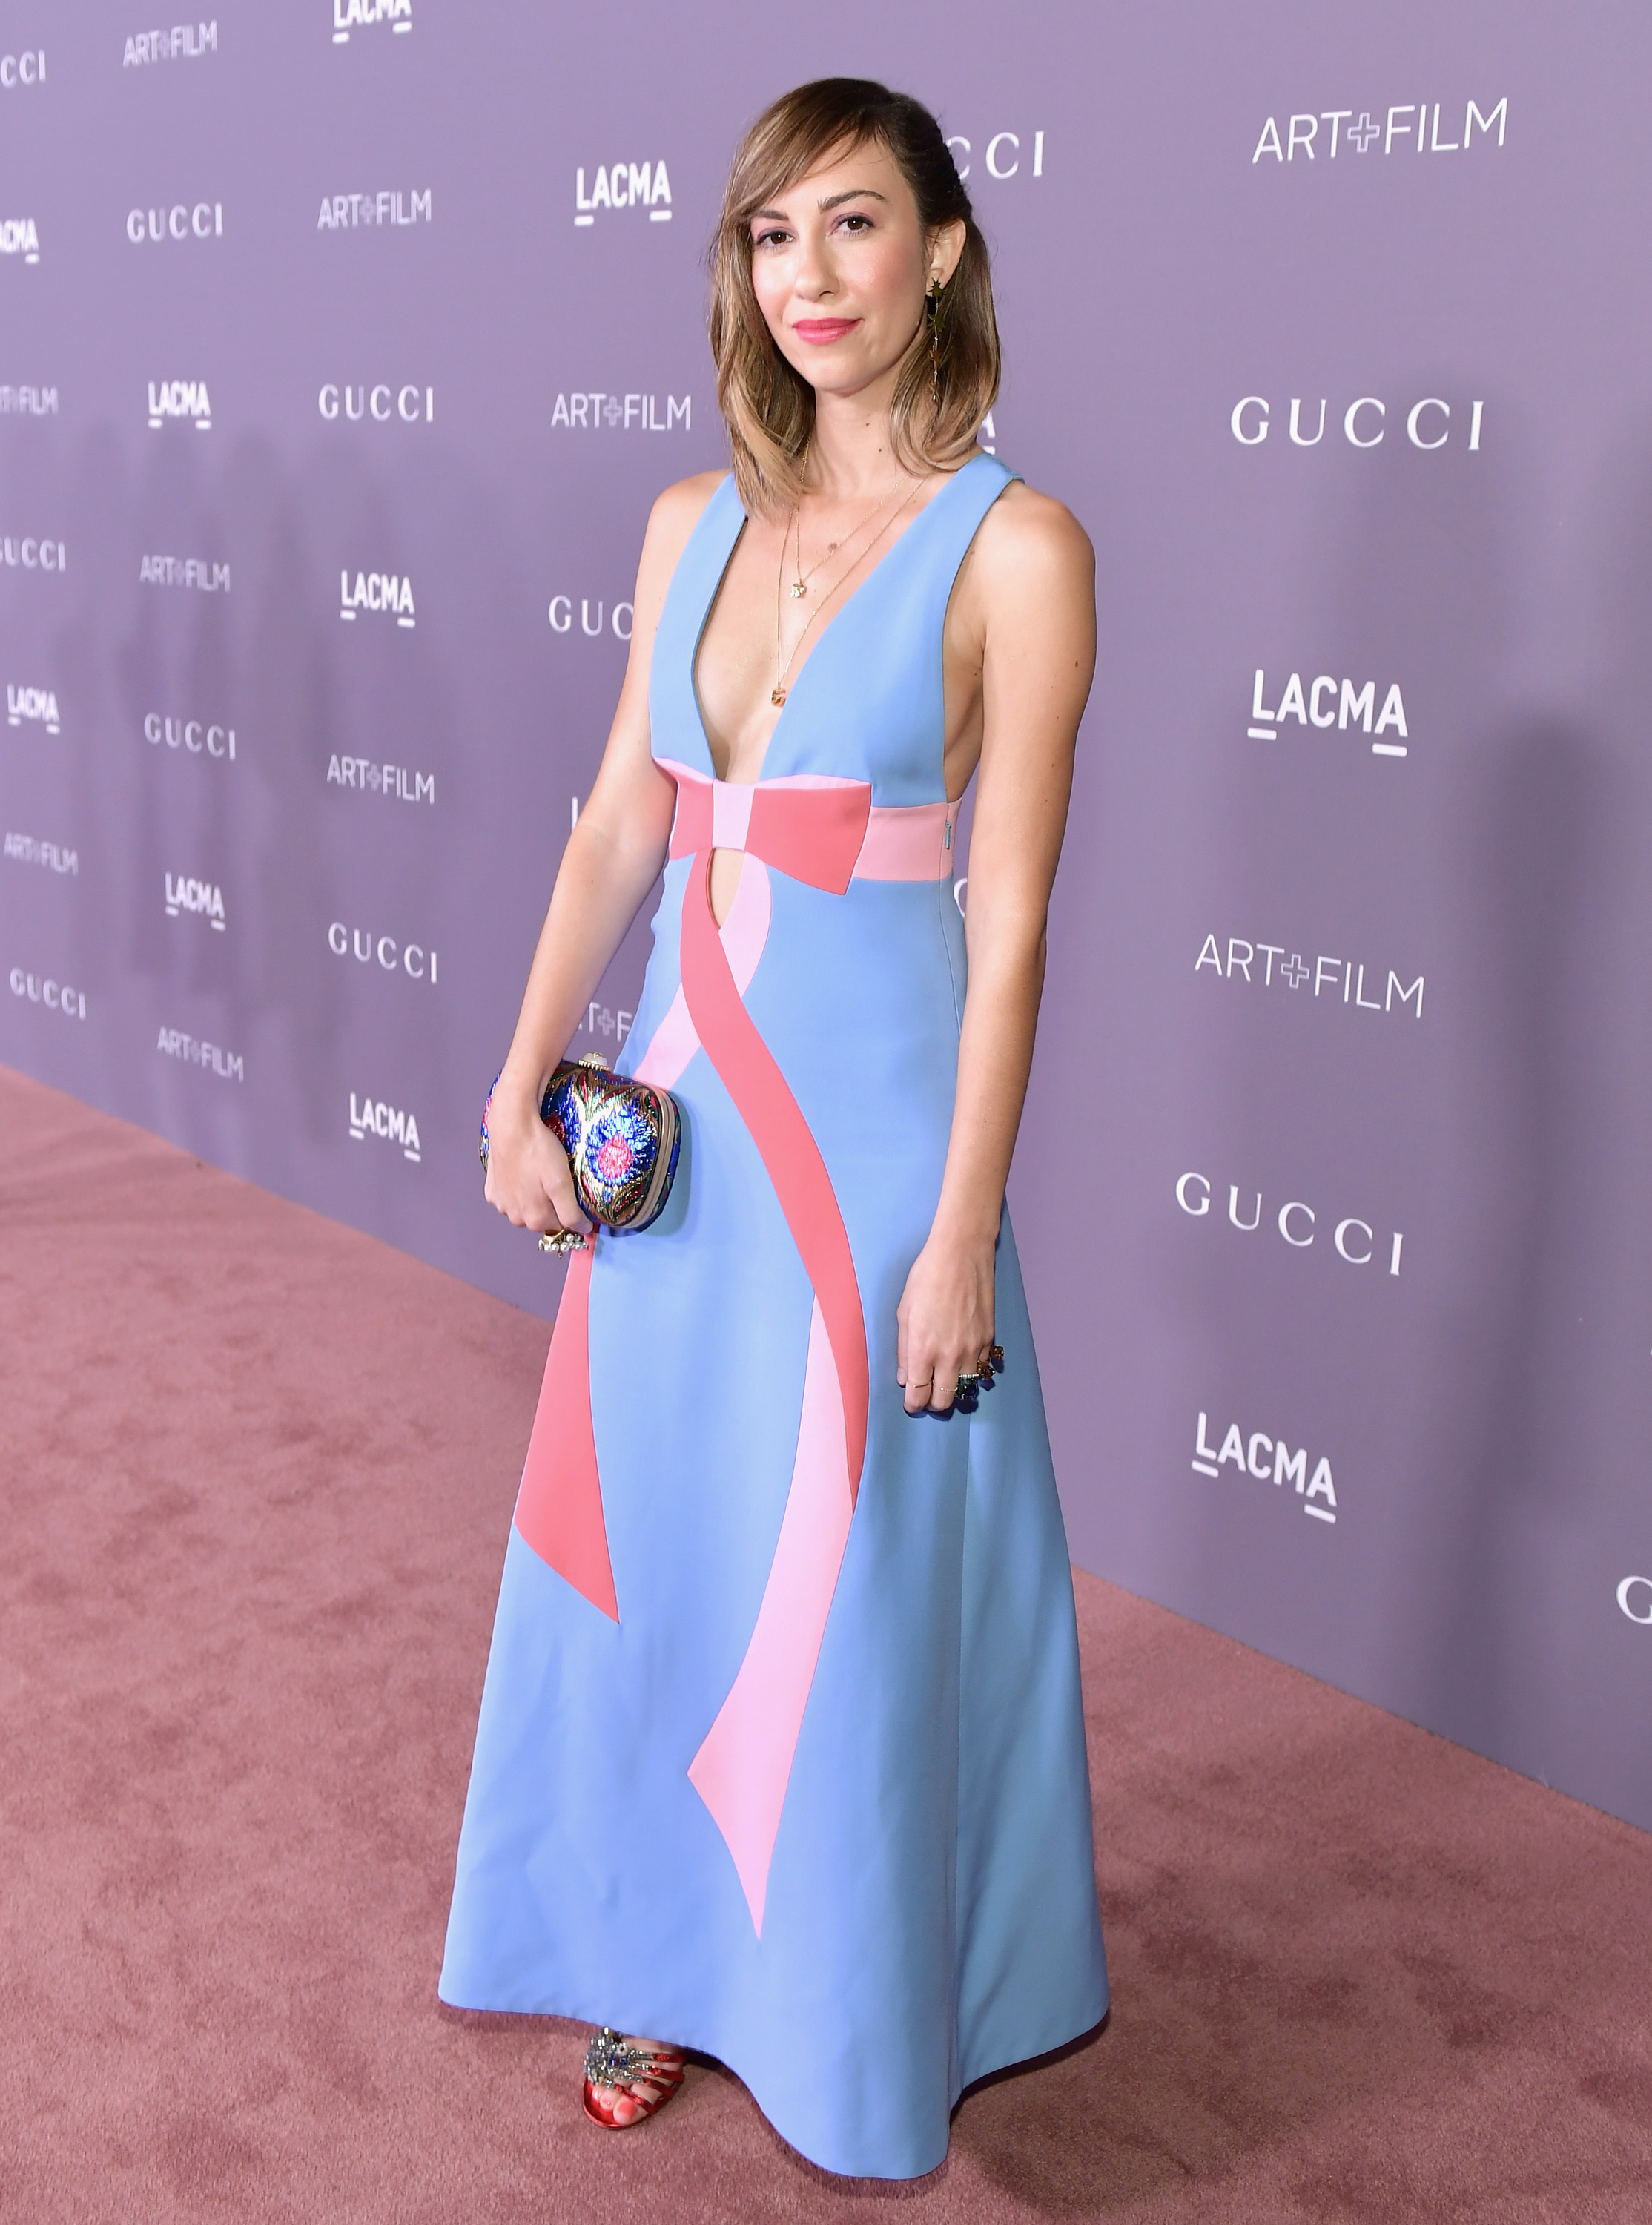 LOS ANGELES, CA - NOVEMBER 04: Director Gia Coppola, wearing Gucci, attends the 2017 LACMA Art + Film Gala Honoring Mark Bradford and George Lucas presented by Gucci at LACMA on November 4, 2017 in Los Angeles, California. (Photo by Neilson Barnard/Getty Images for LACMA)